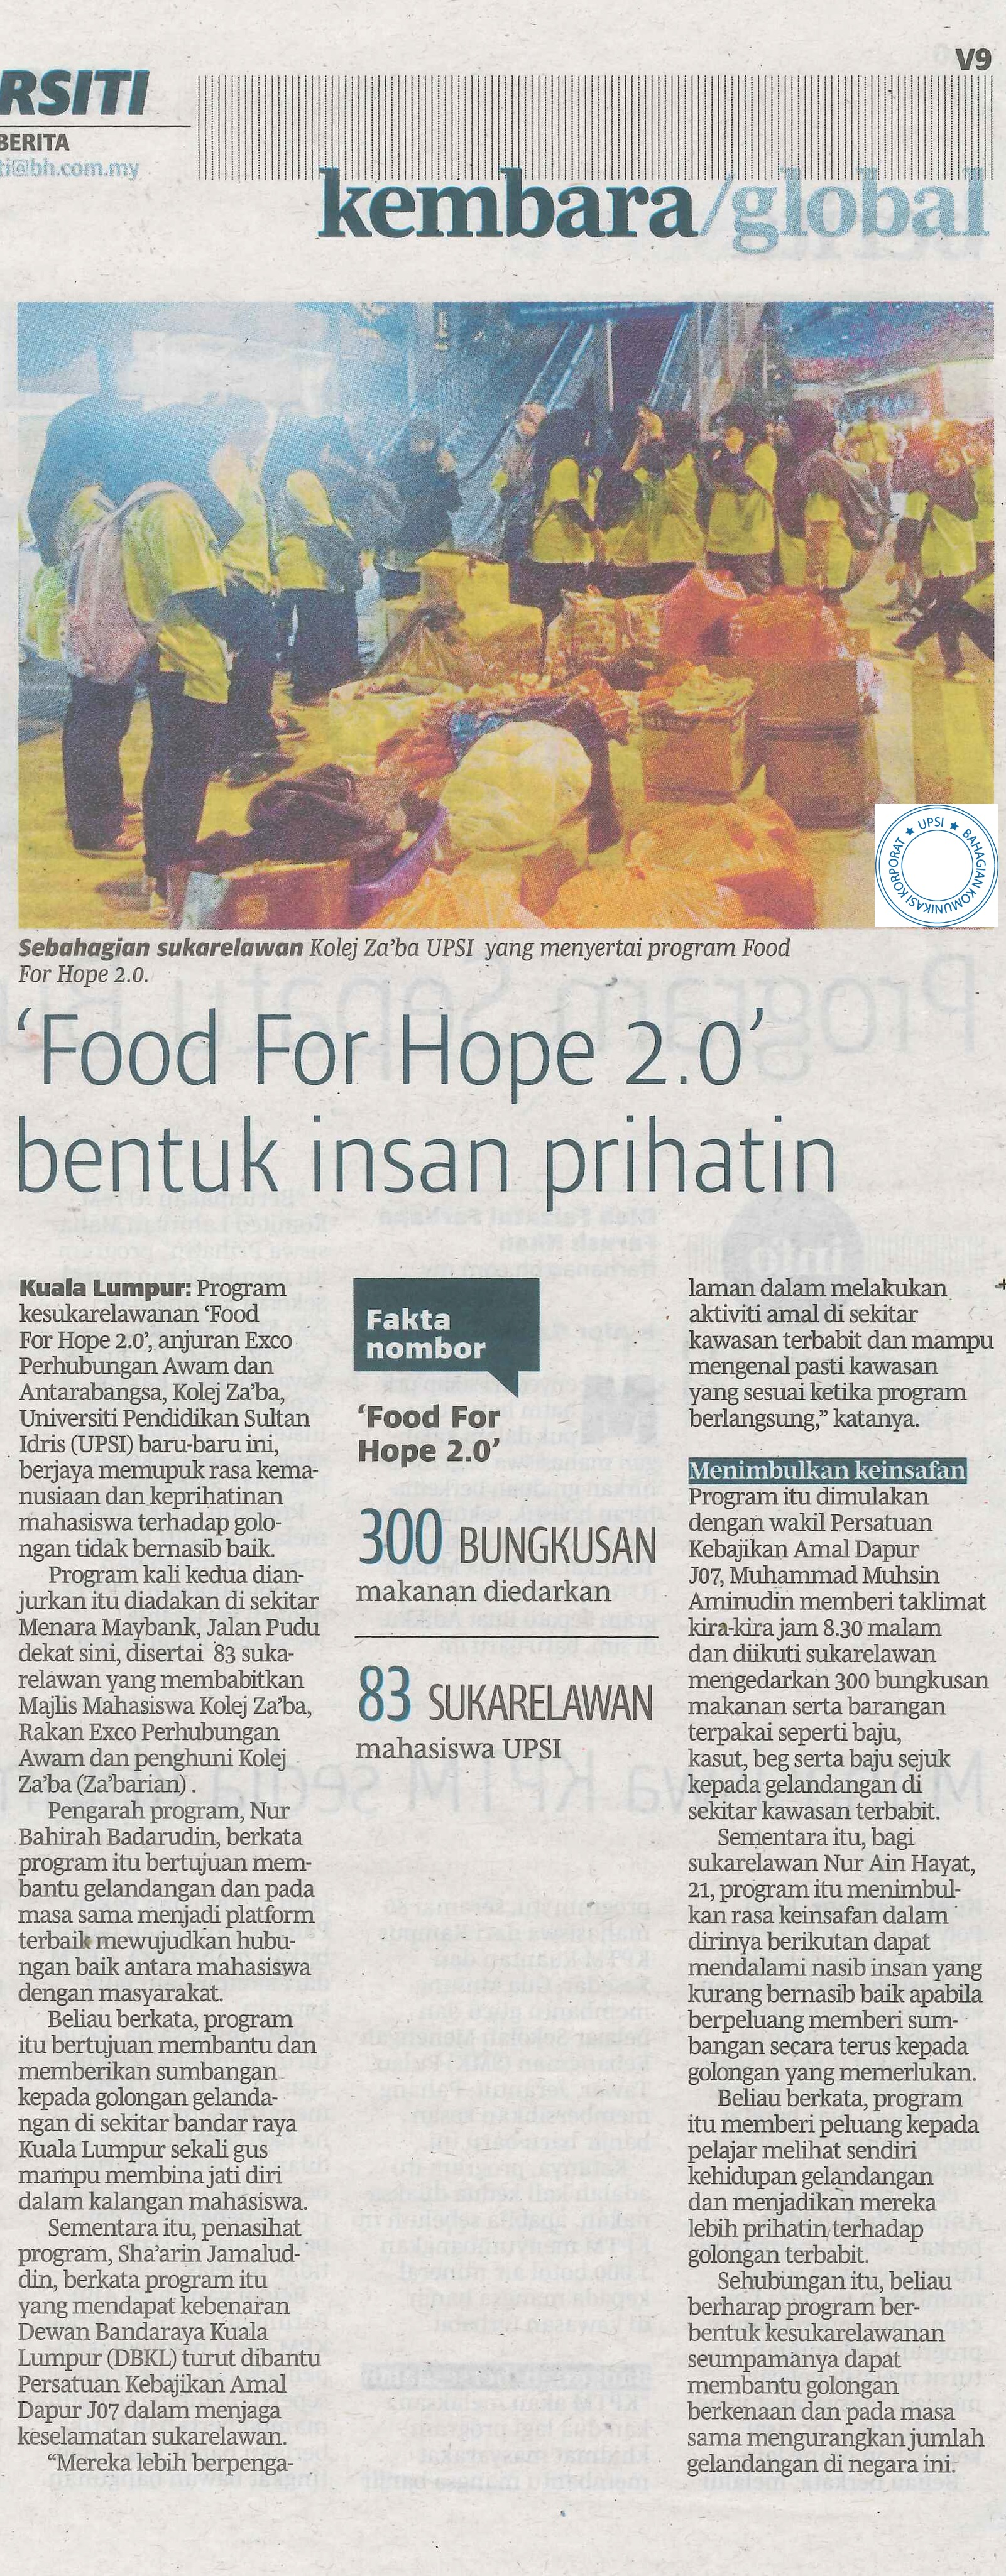 BH ( 16 FEB 2017) ~ FOOD FOR HOPE 2.0 BENTUK INSAN PRIHATIN